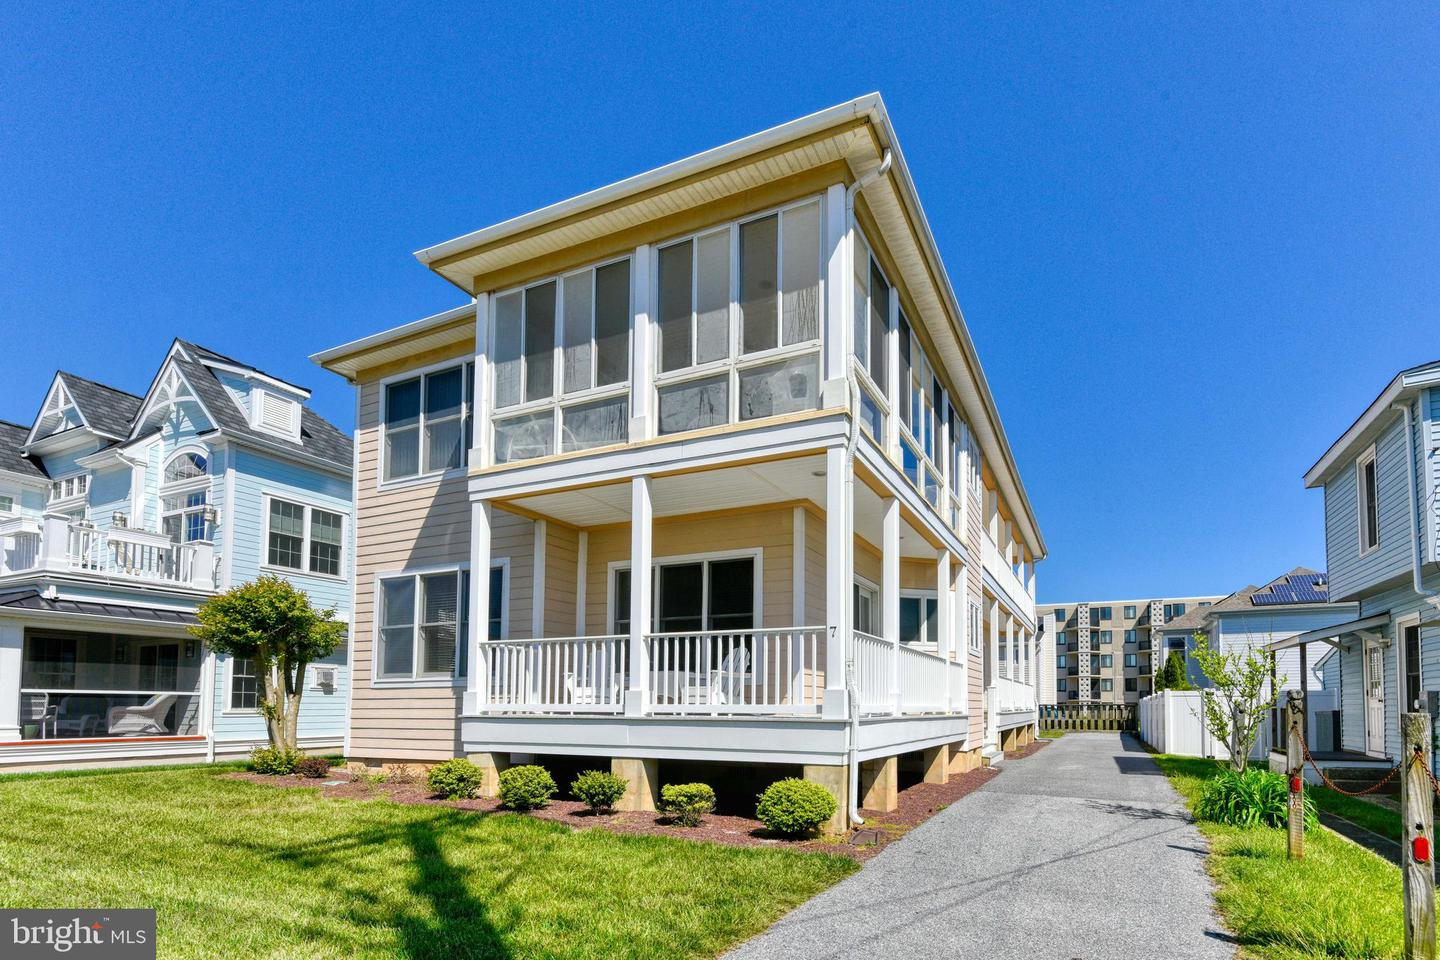 DESU140752-301729566779-2019-05-20-15-11-27 7 Olive Ave | Rehoboth Beach, DE Real Estate For Sale | MLS# Desu140752  - 1st Choice Properties